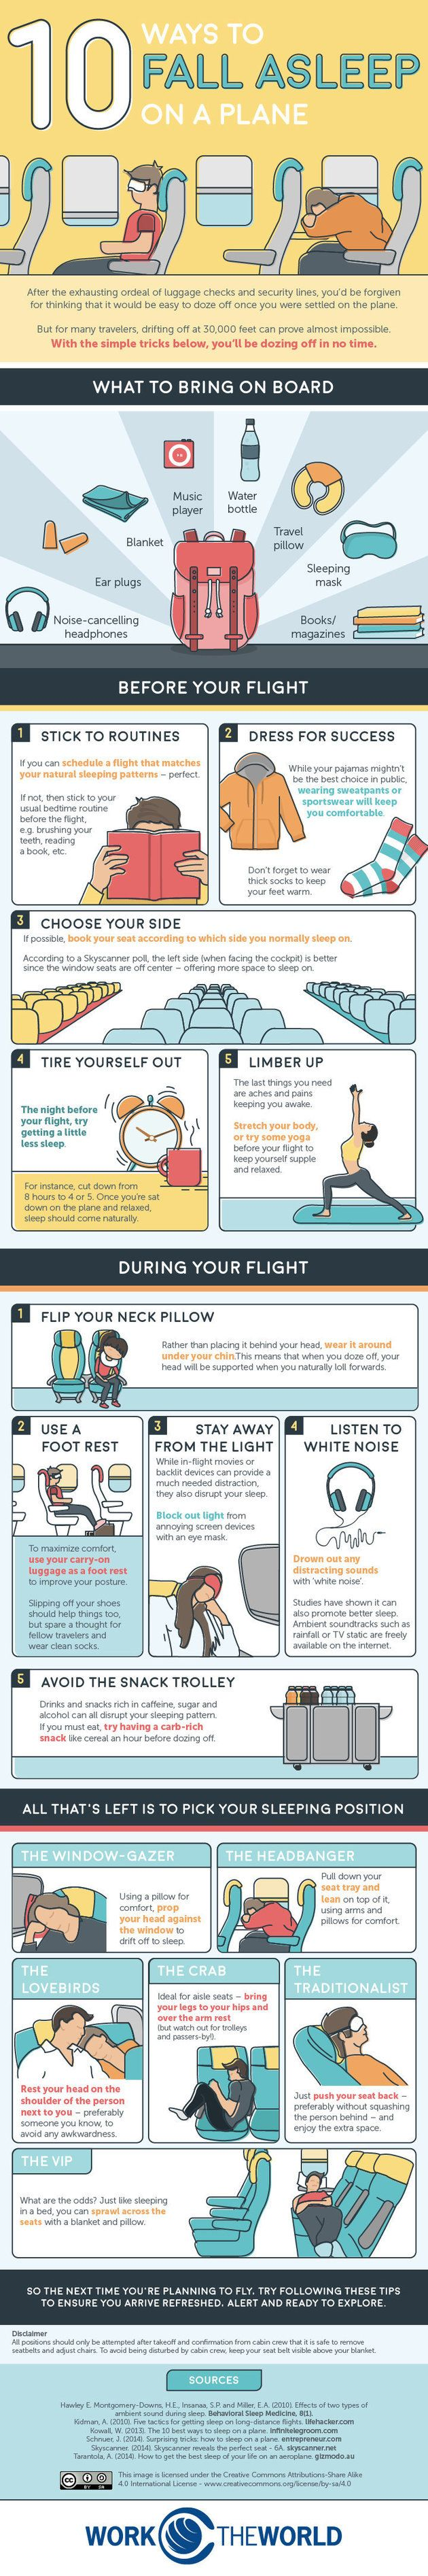 10 Ways to Fall Asleep on a Plane - this will come in handy the next time I fly!